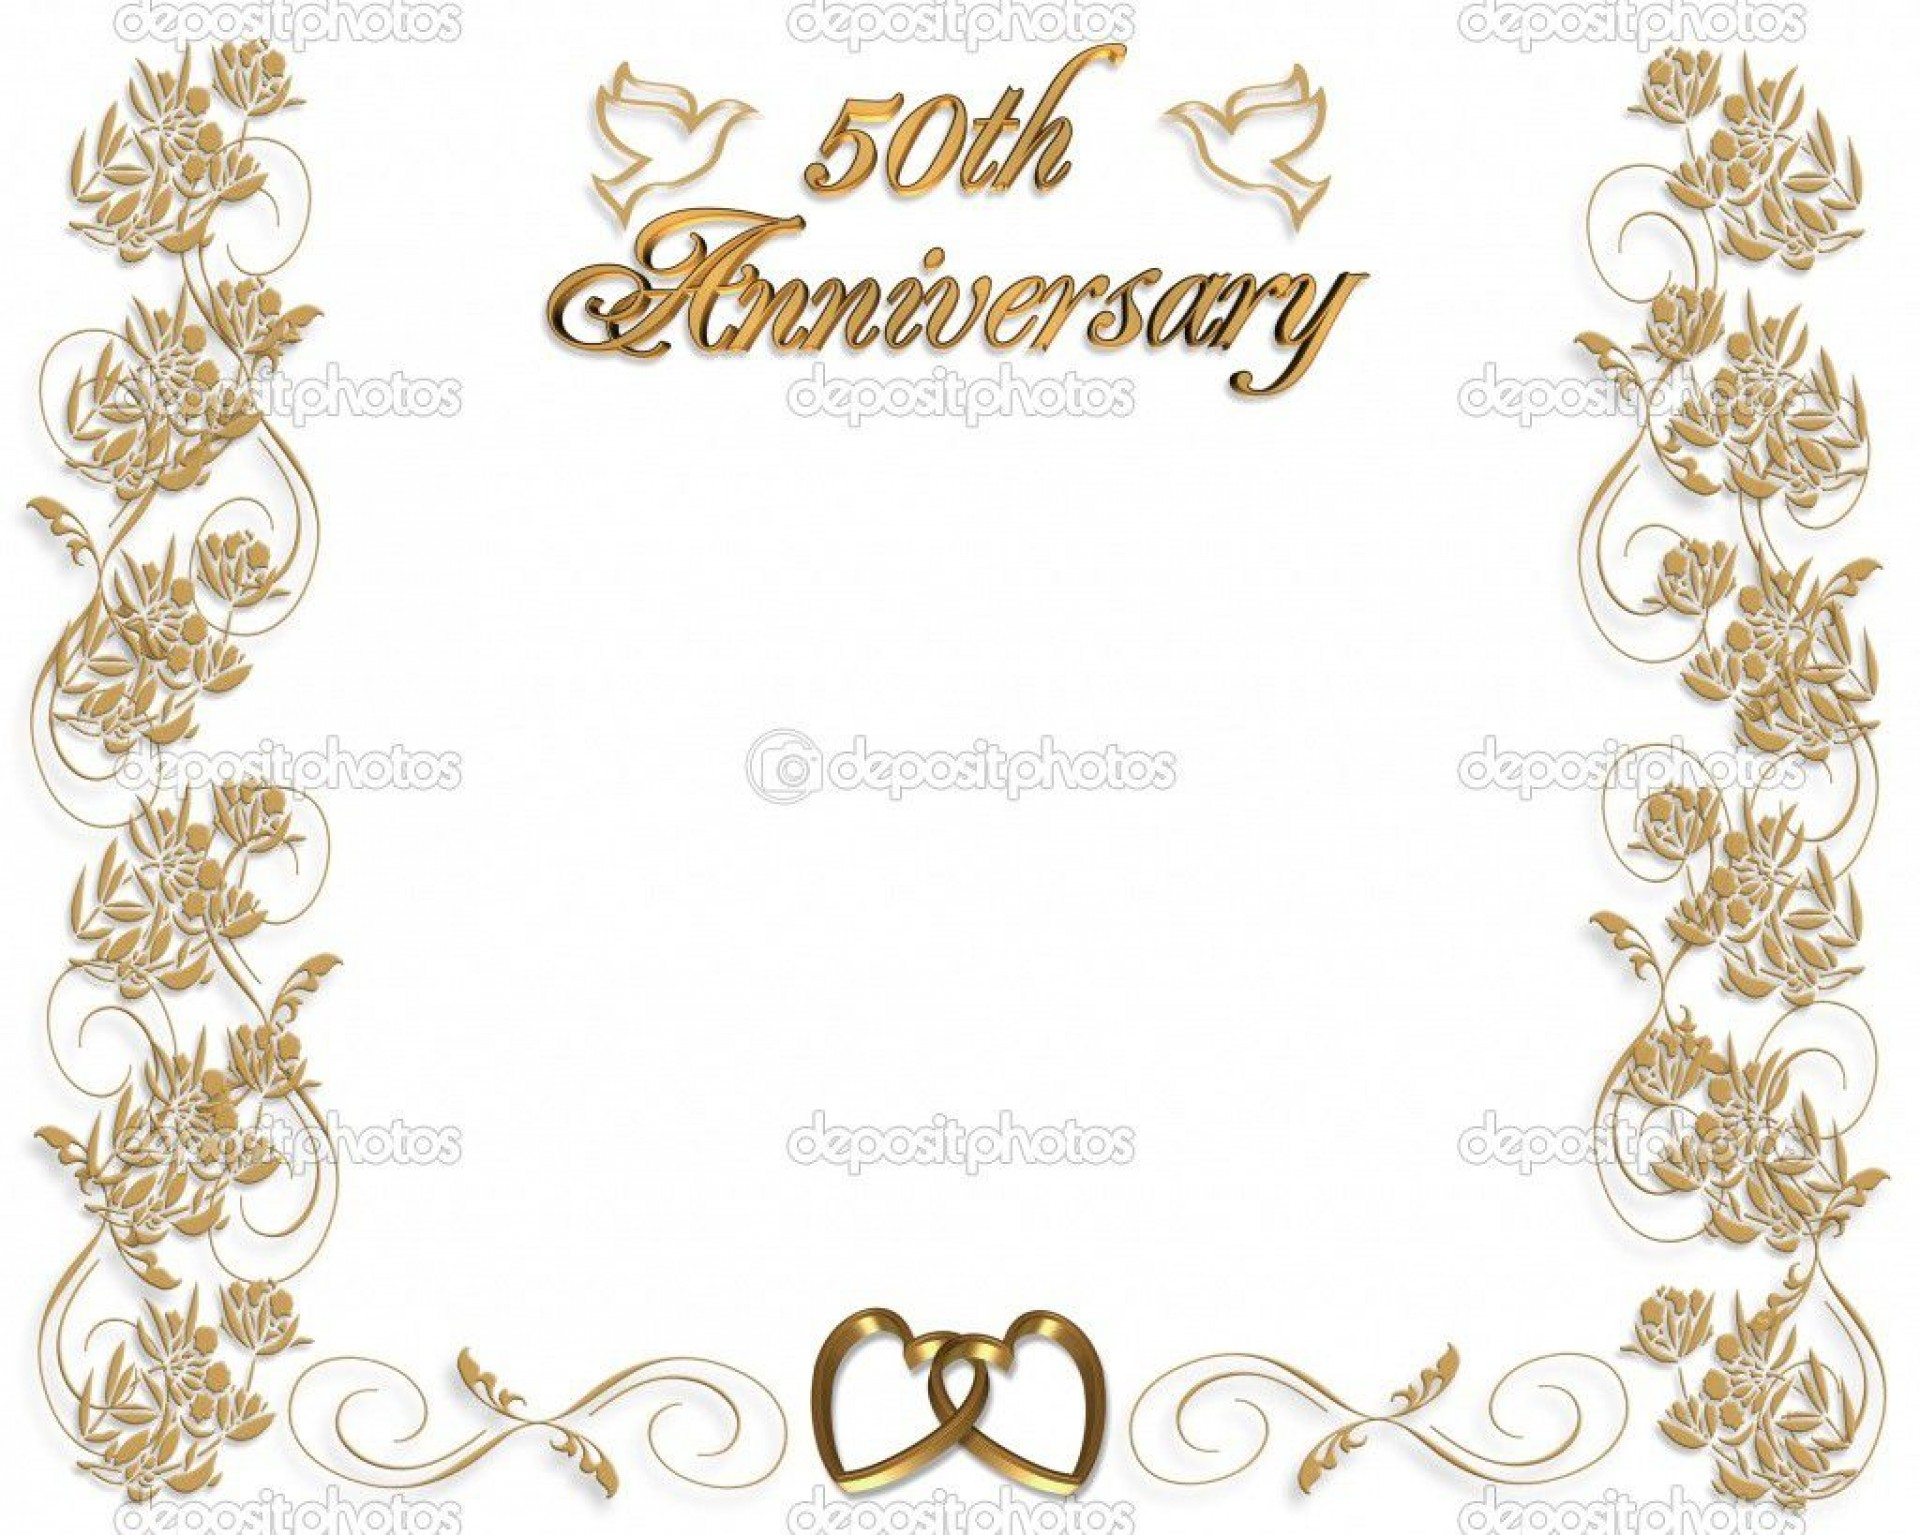 004 Marvelou Golden Wedding Anniversary Invitation Template Free Highest Clarity  50th Microsoft Word Download1920